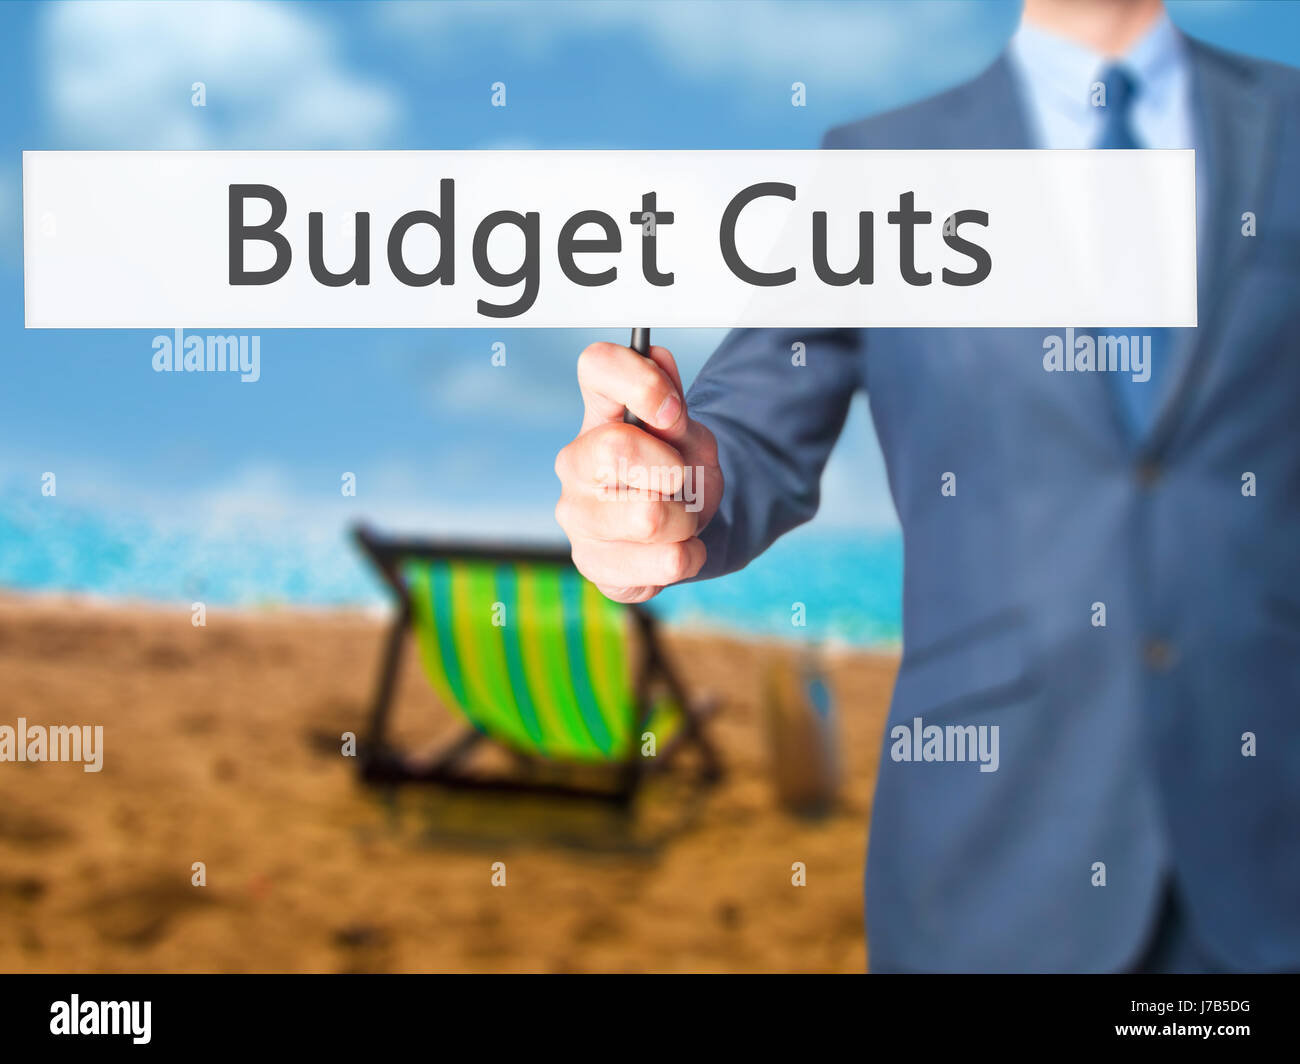 Budget Cuts - Businessman hand holding sign. Business, technology, internet concept. Stock Photo - Stock Image